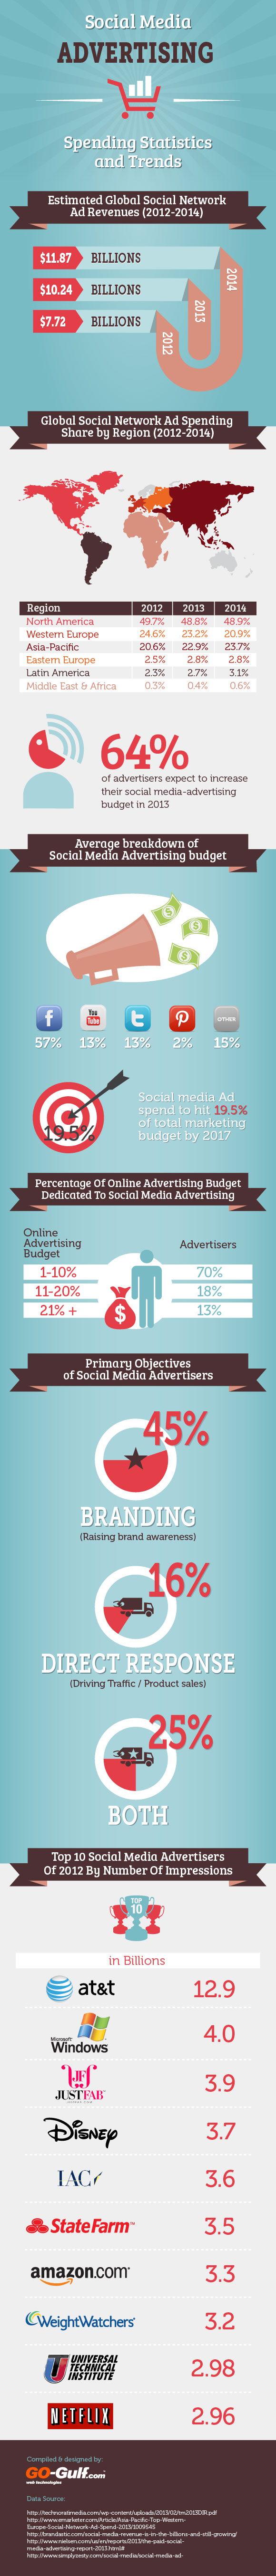 social-media-advertising--spending-statistics-and-trends_515eadac3c606